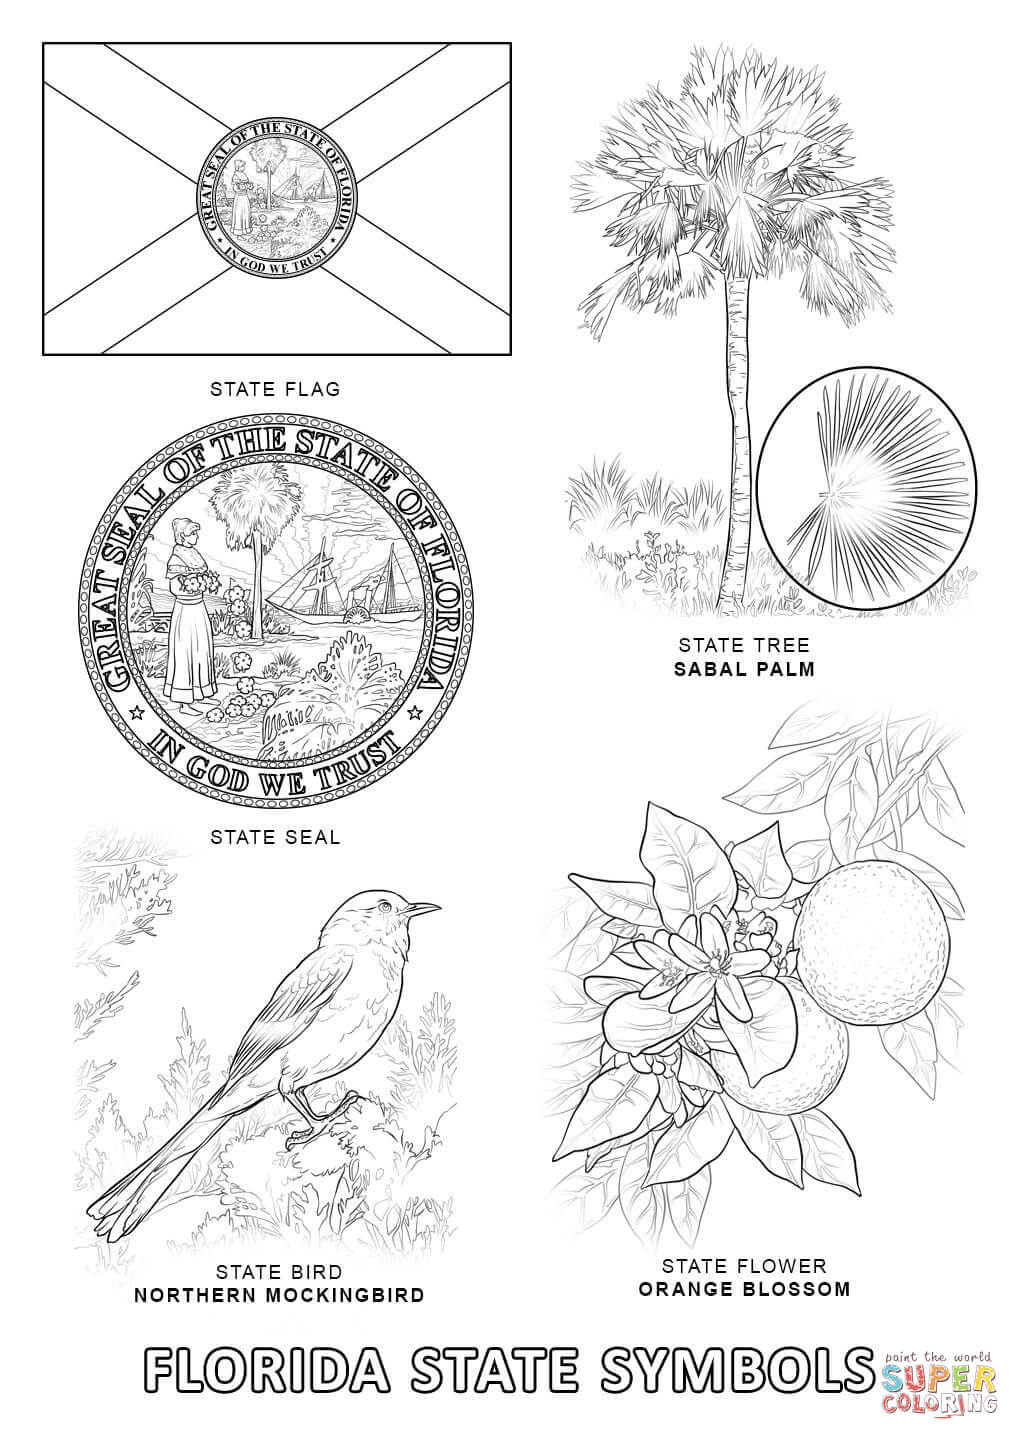 Florida State Symbols coloring page | Free Printable Coloring Pages